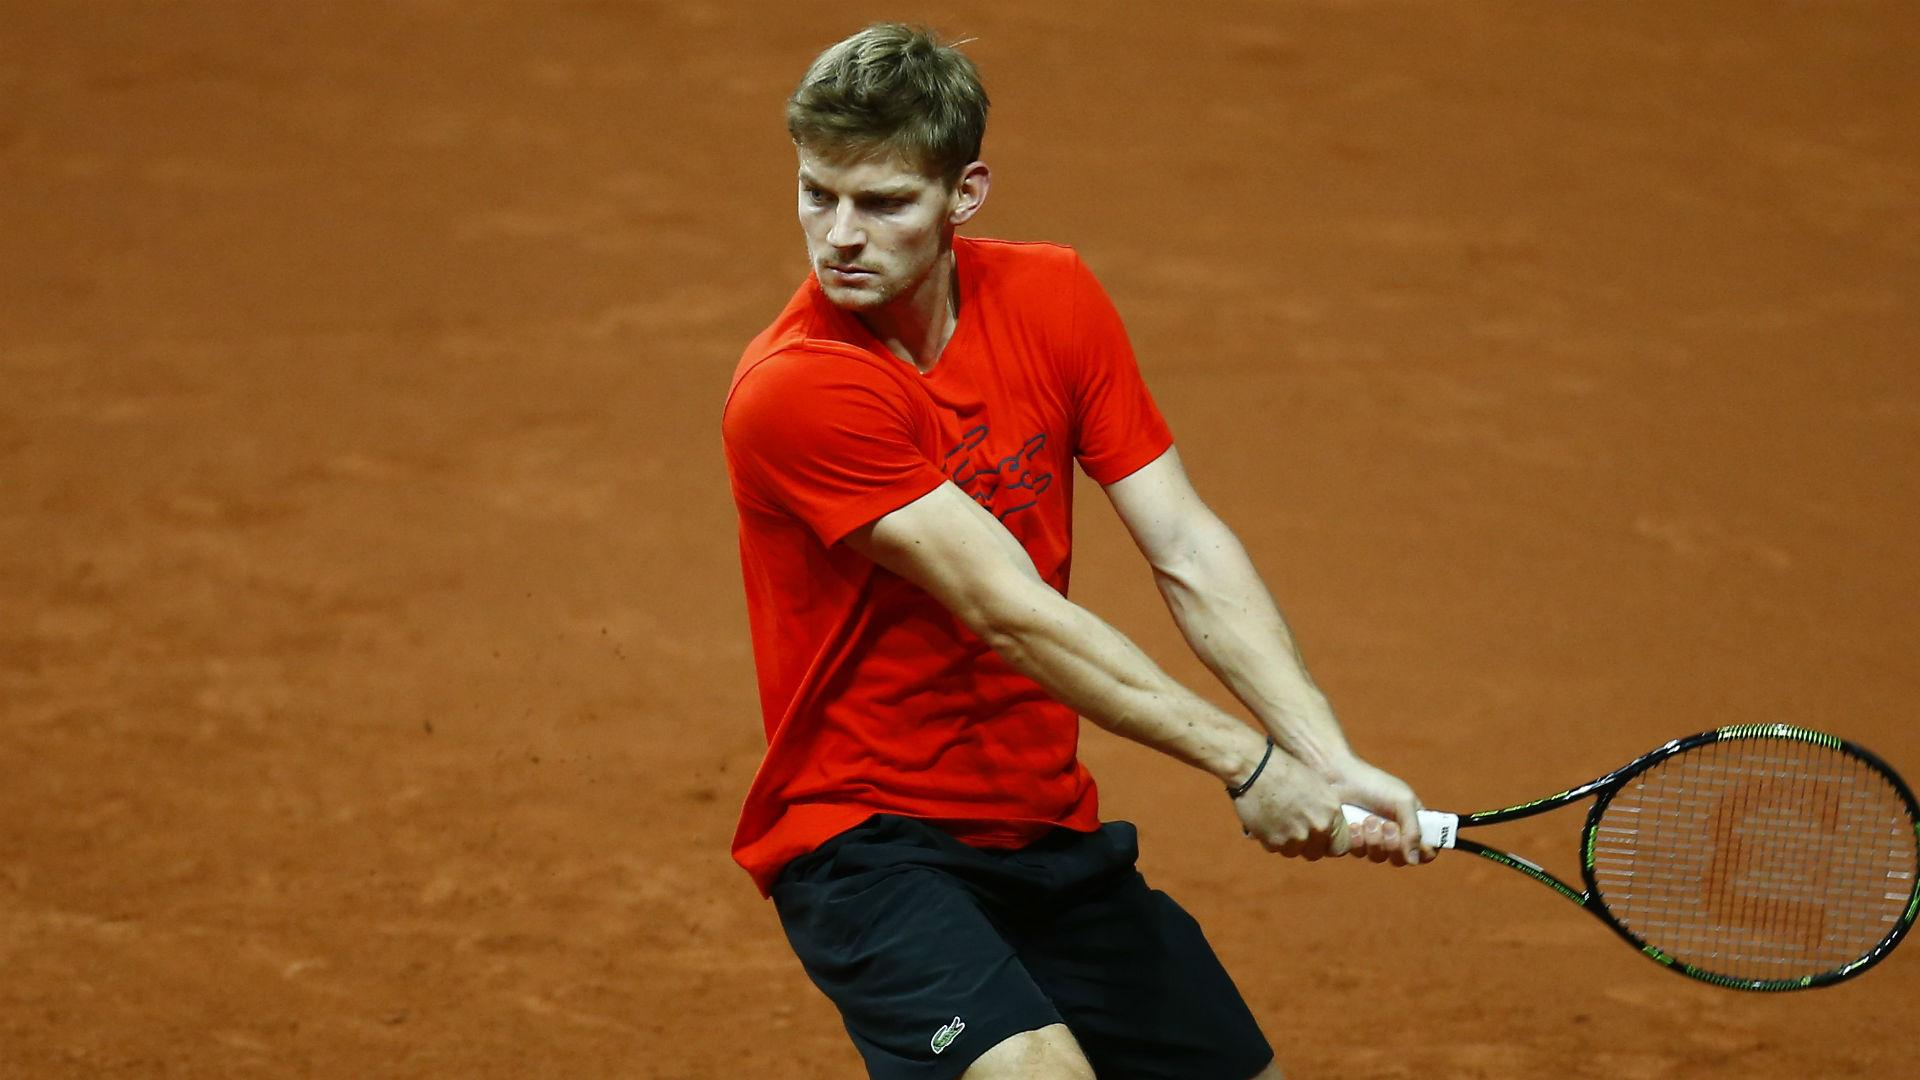 Goffin aiming to forget Murray thrashing